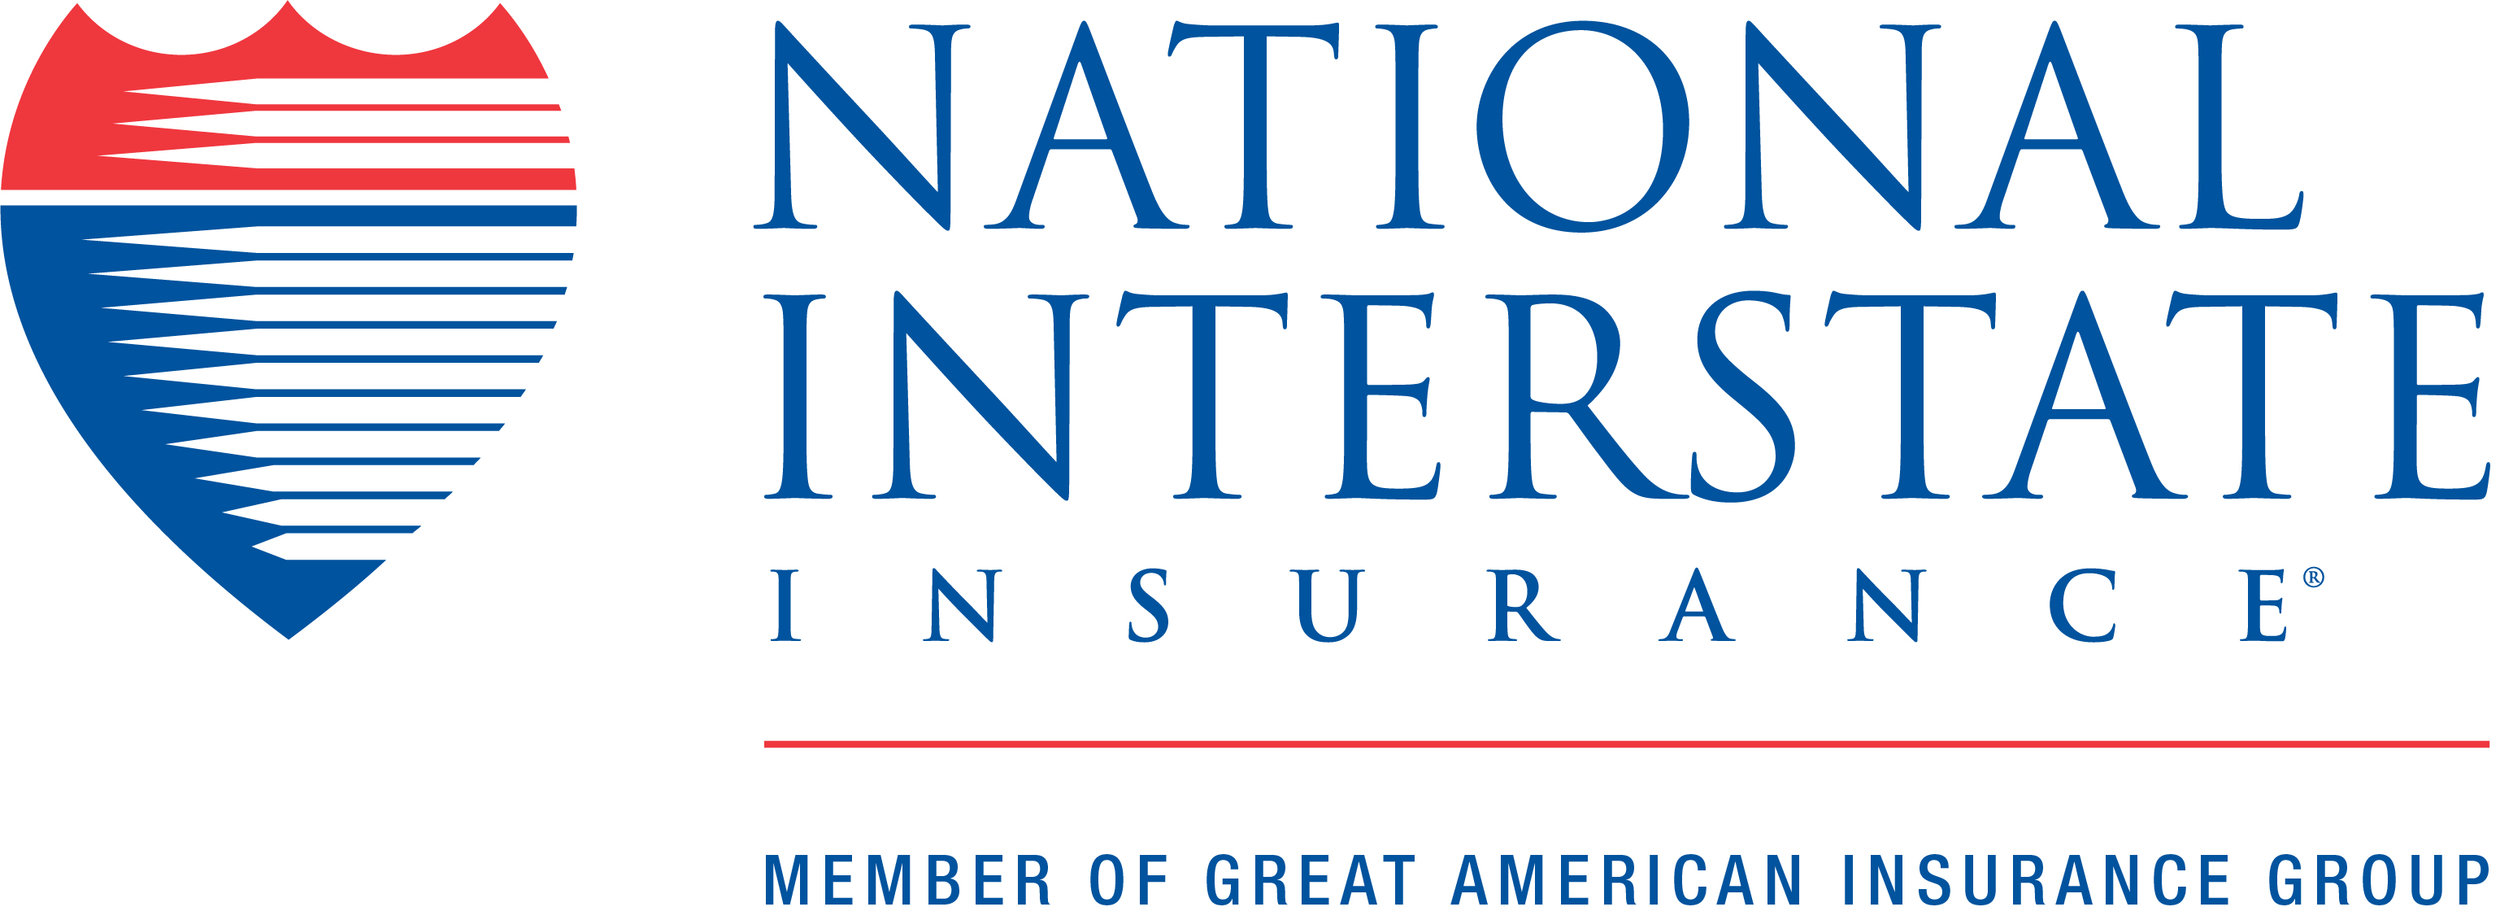 National Interstate Insurance